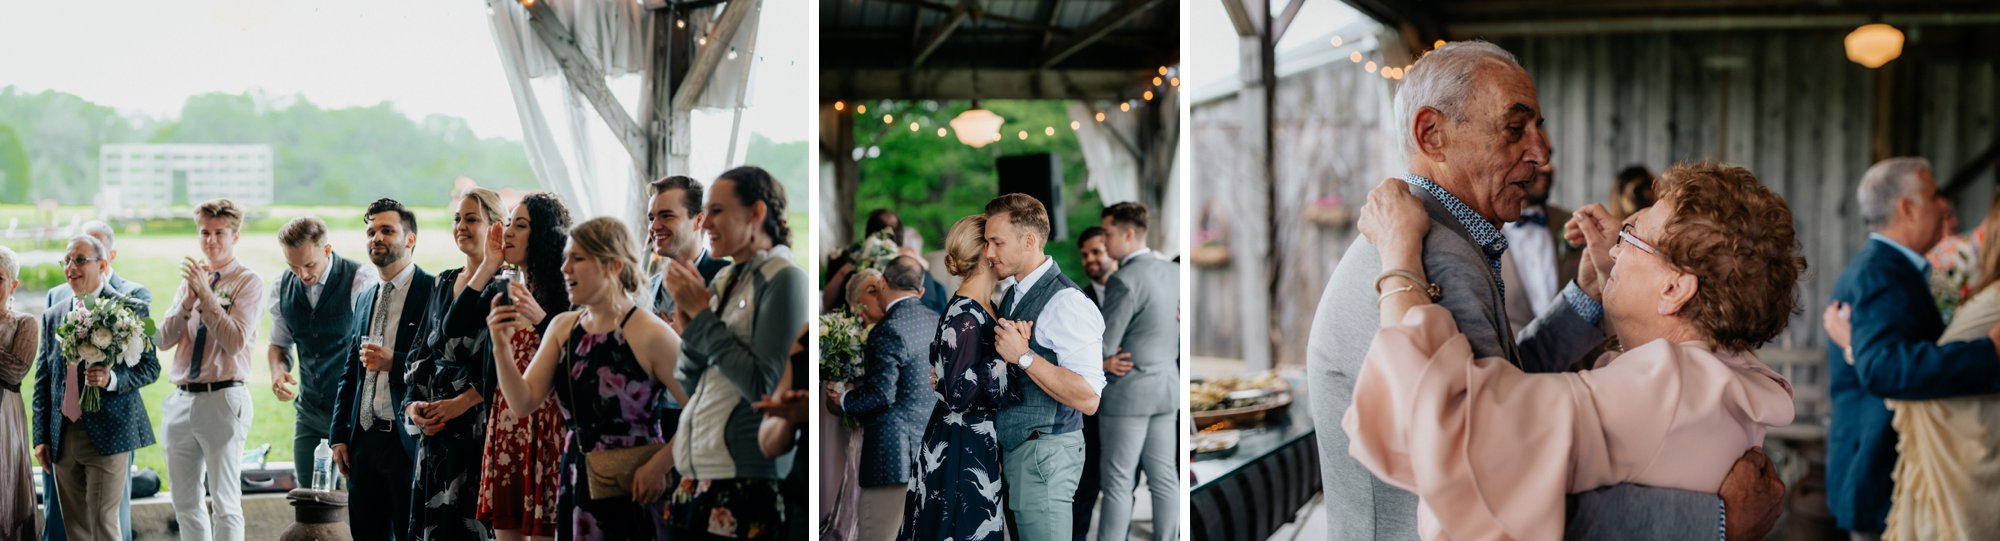 Fiddle Lake Farm Philadelphia Pennsylvania Misty Rustic Wedding with Lush Florals Dancing